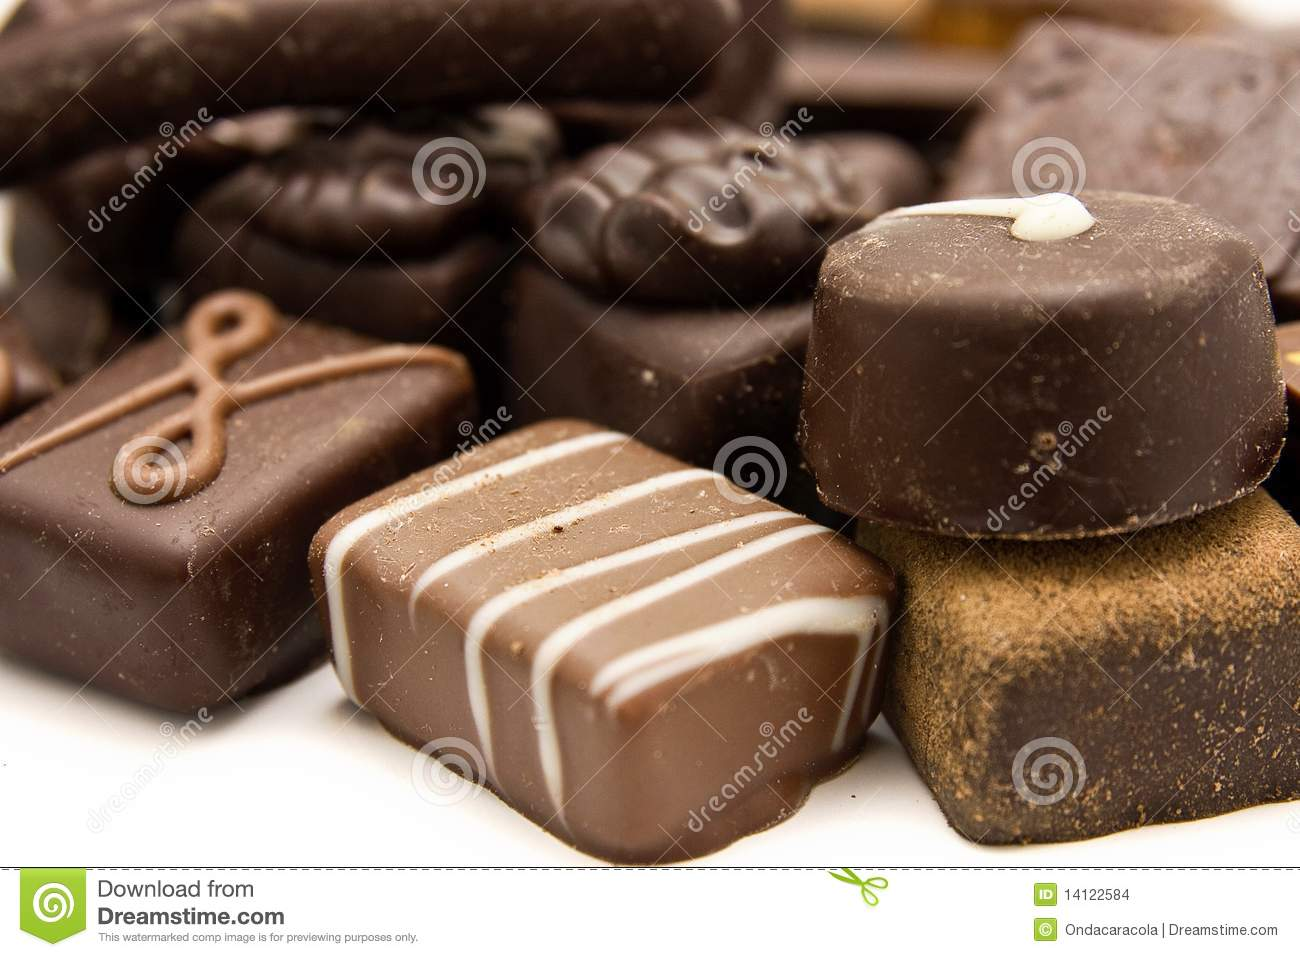 Different Types Sweets Stock Photos, Images, & Pictures - 194 Images